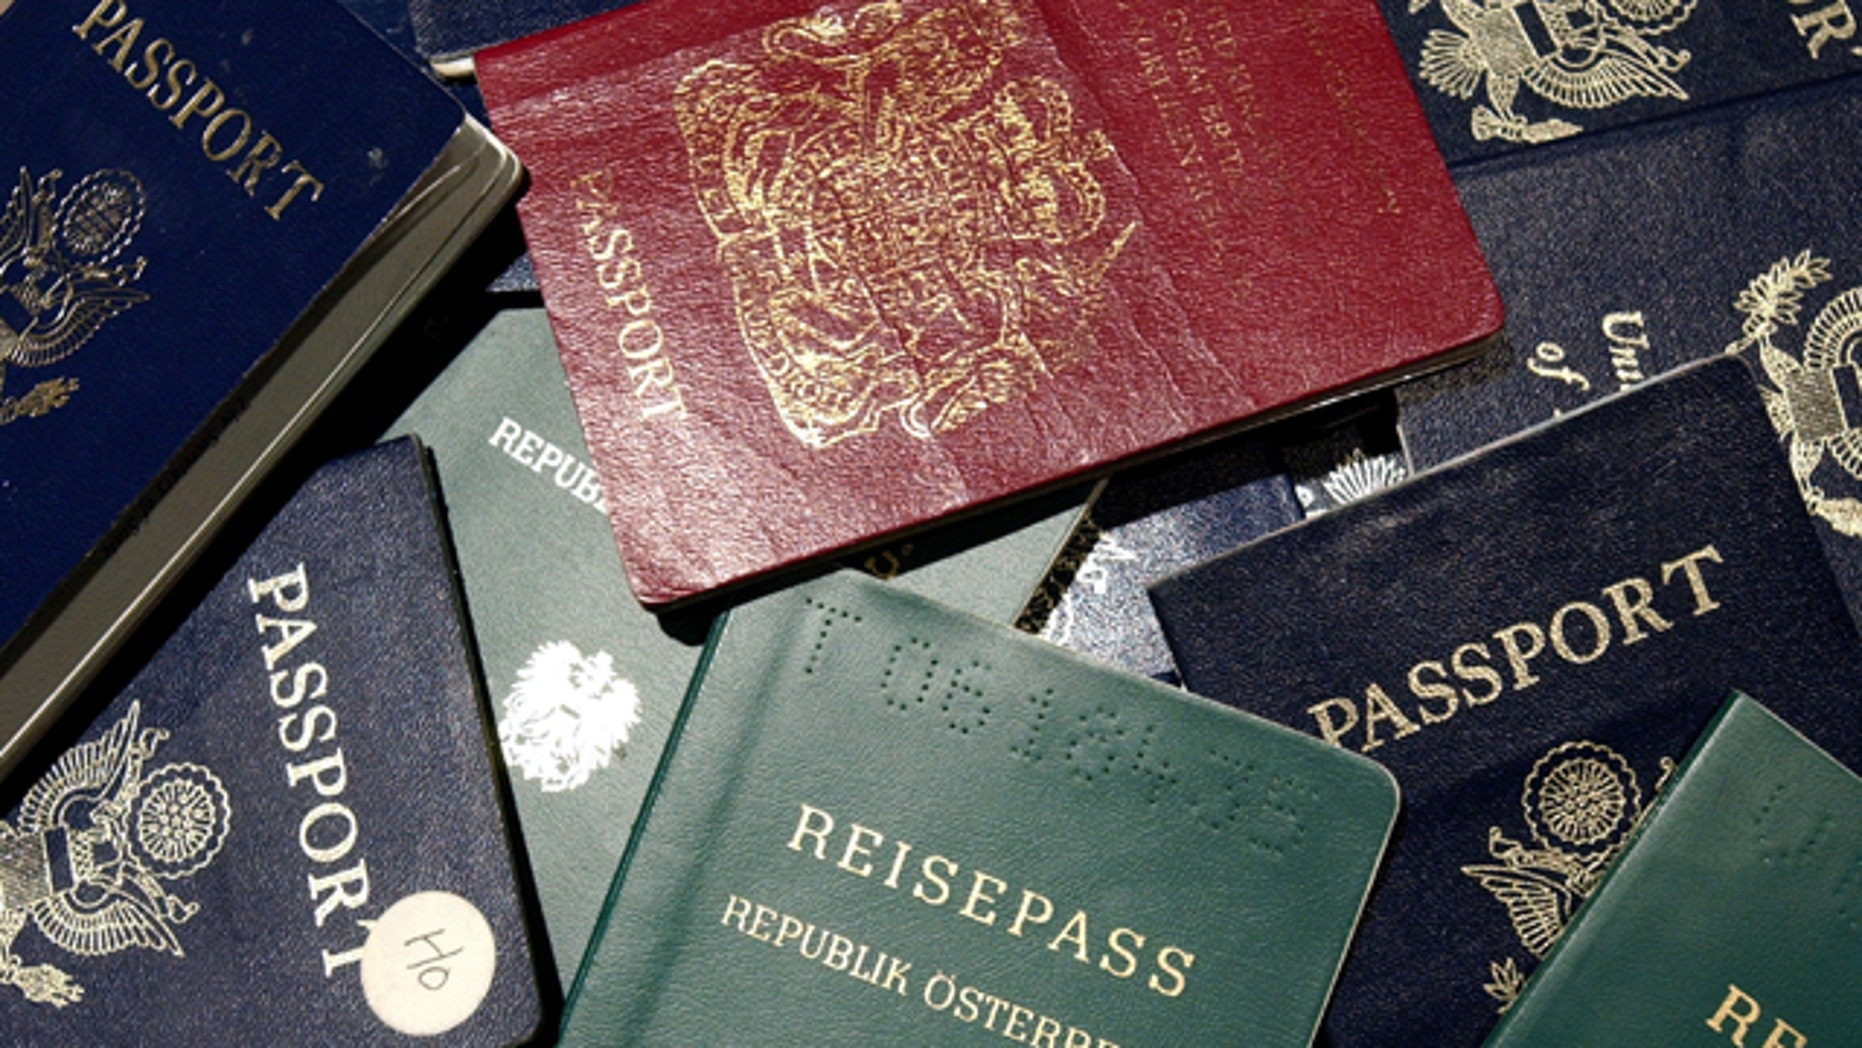 SAN FRANCISCO - JUNE 14:  Counterfeit passports are shown at San Francisco International Airport June 14, 2002 in California. At more than 300 ports of entry across the U.S., a new system known as DataShare is being used to enable U.S. Immigration and Naturalization Service (INS) inspectors to see biographical information and photographs of visa holders who receive their documents at consular posts around the world.  (Photo by Justin Sullivan/Getty Images)